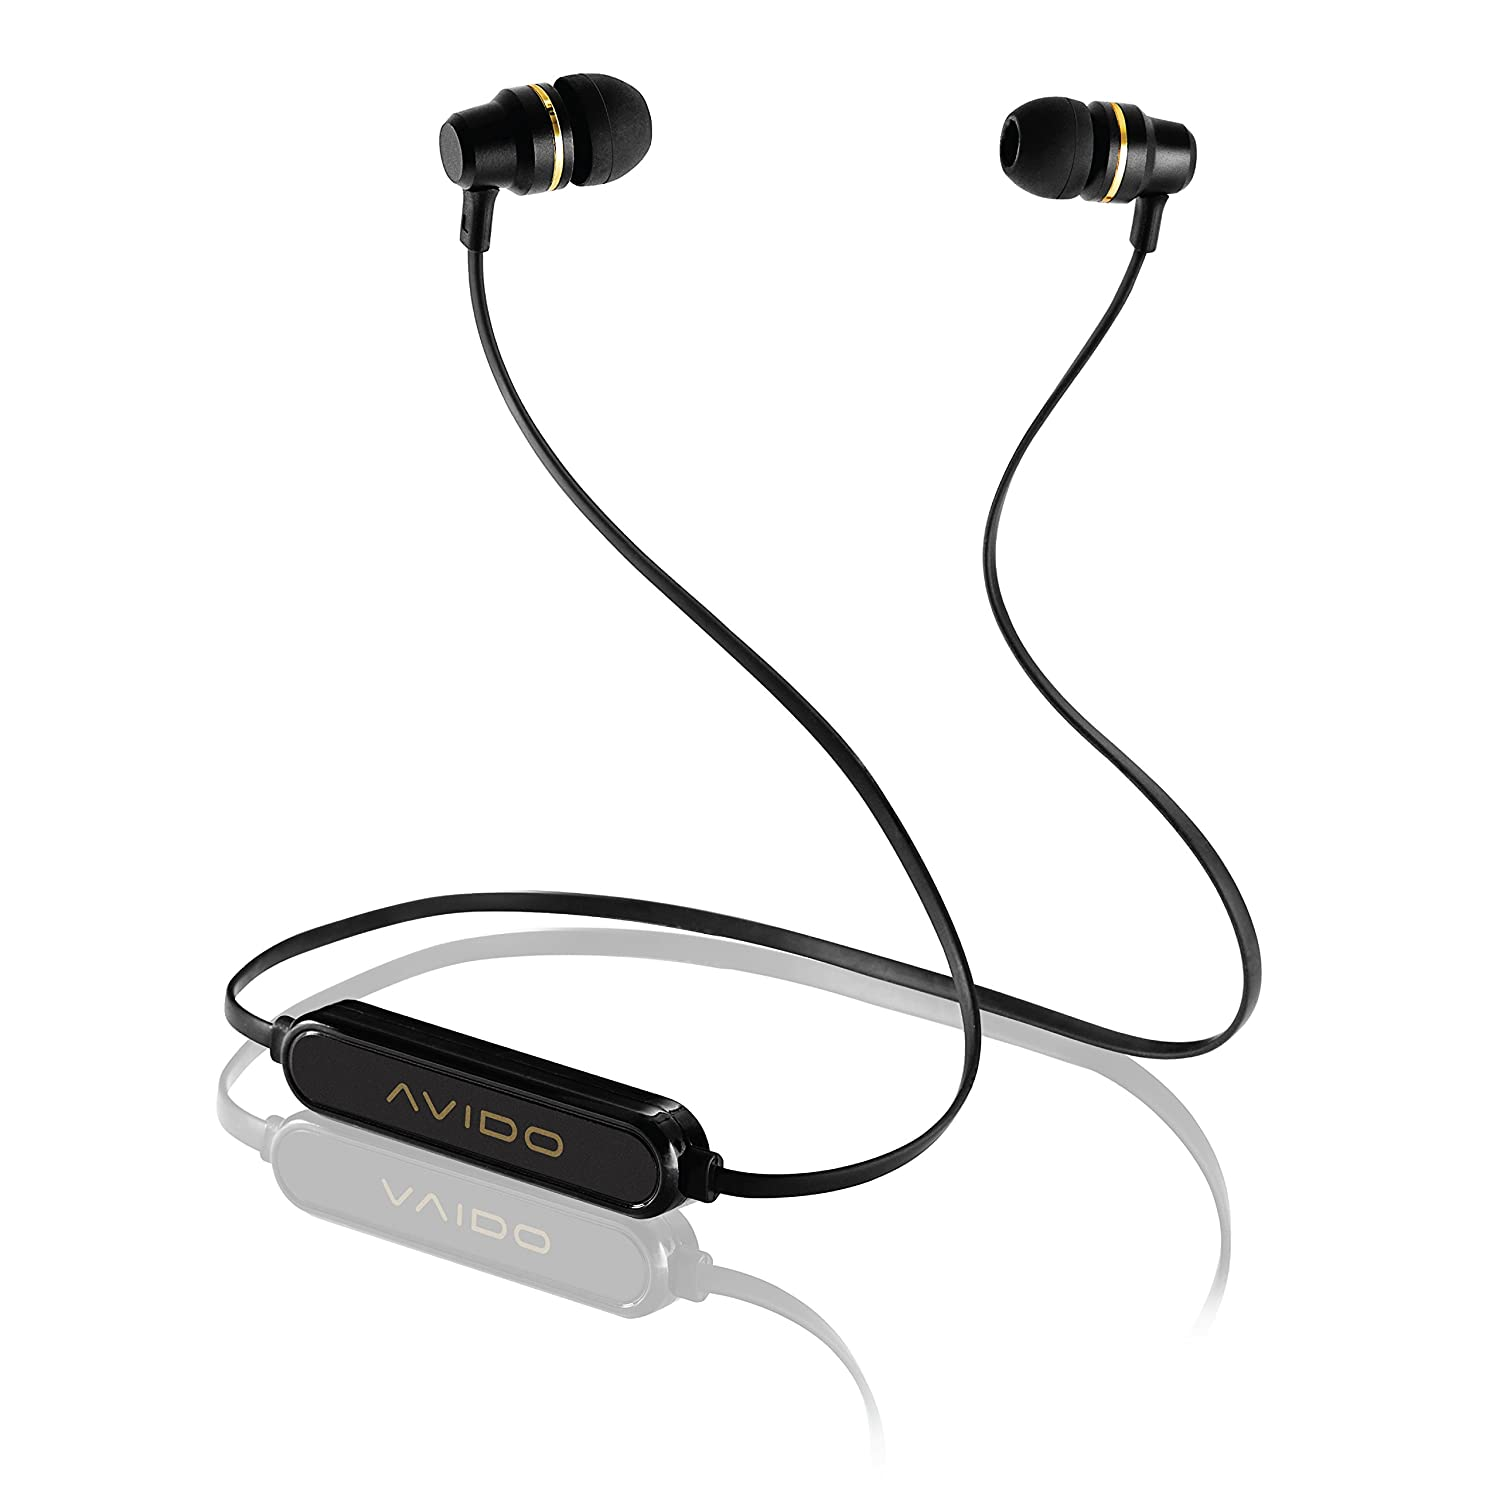 Avido ZYLO Premium Wireless Bluetooth in-Ear Earphones Earbuds – Multi-Function Remote Mic for Hands-Free Calling, HD Performance Sound, Long-Lasting Battery Retail Packaging – Black Gold